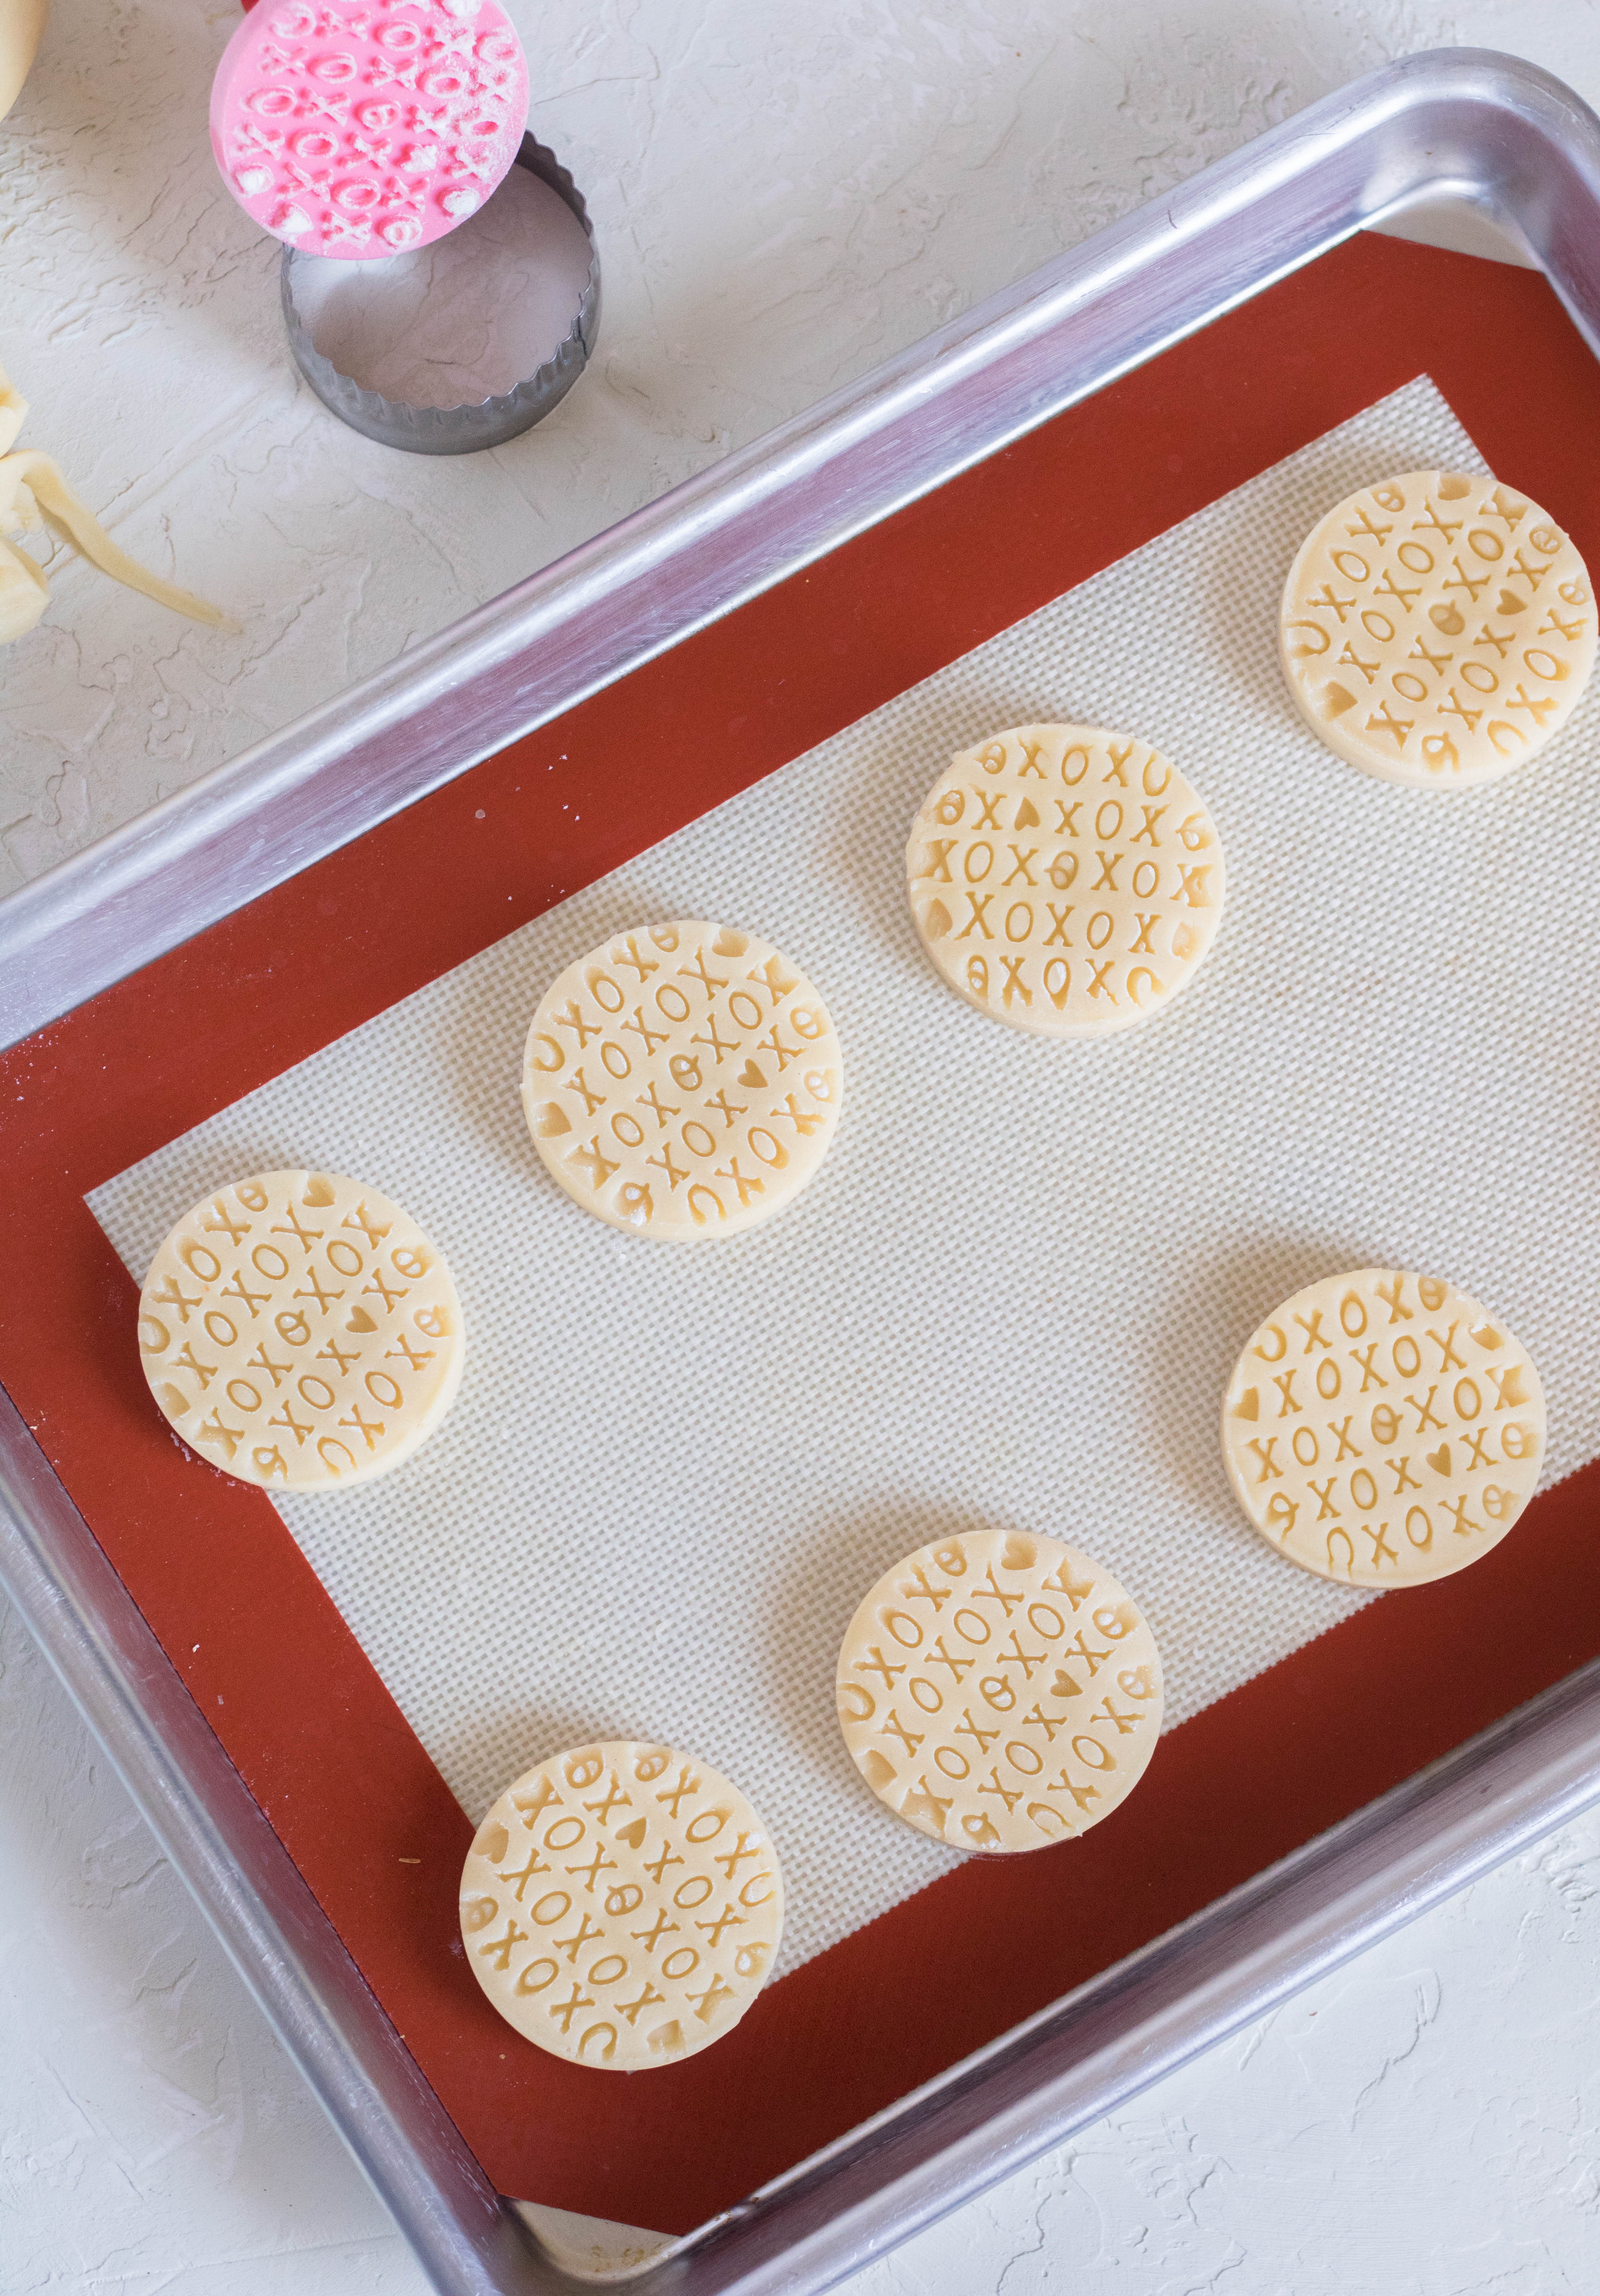 shortbread cookies for freezer